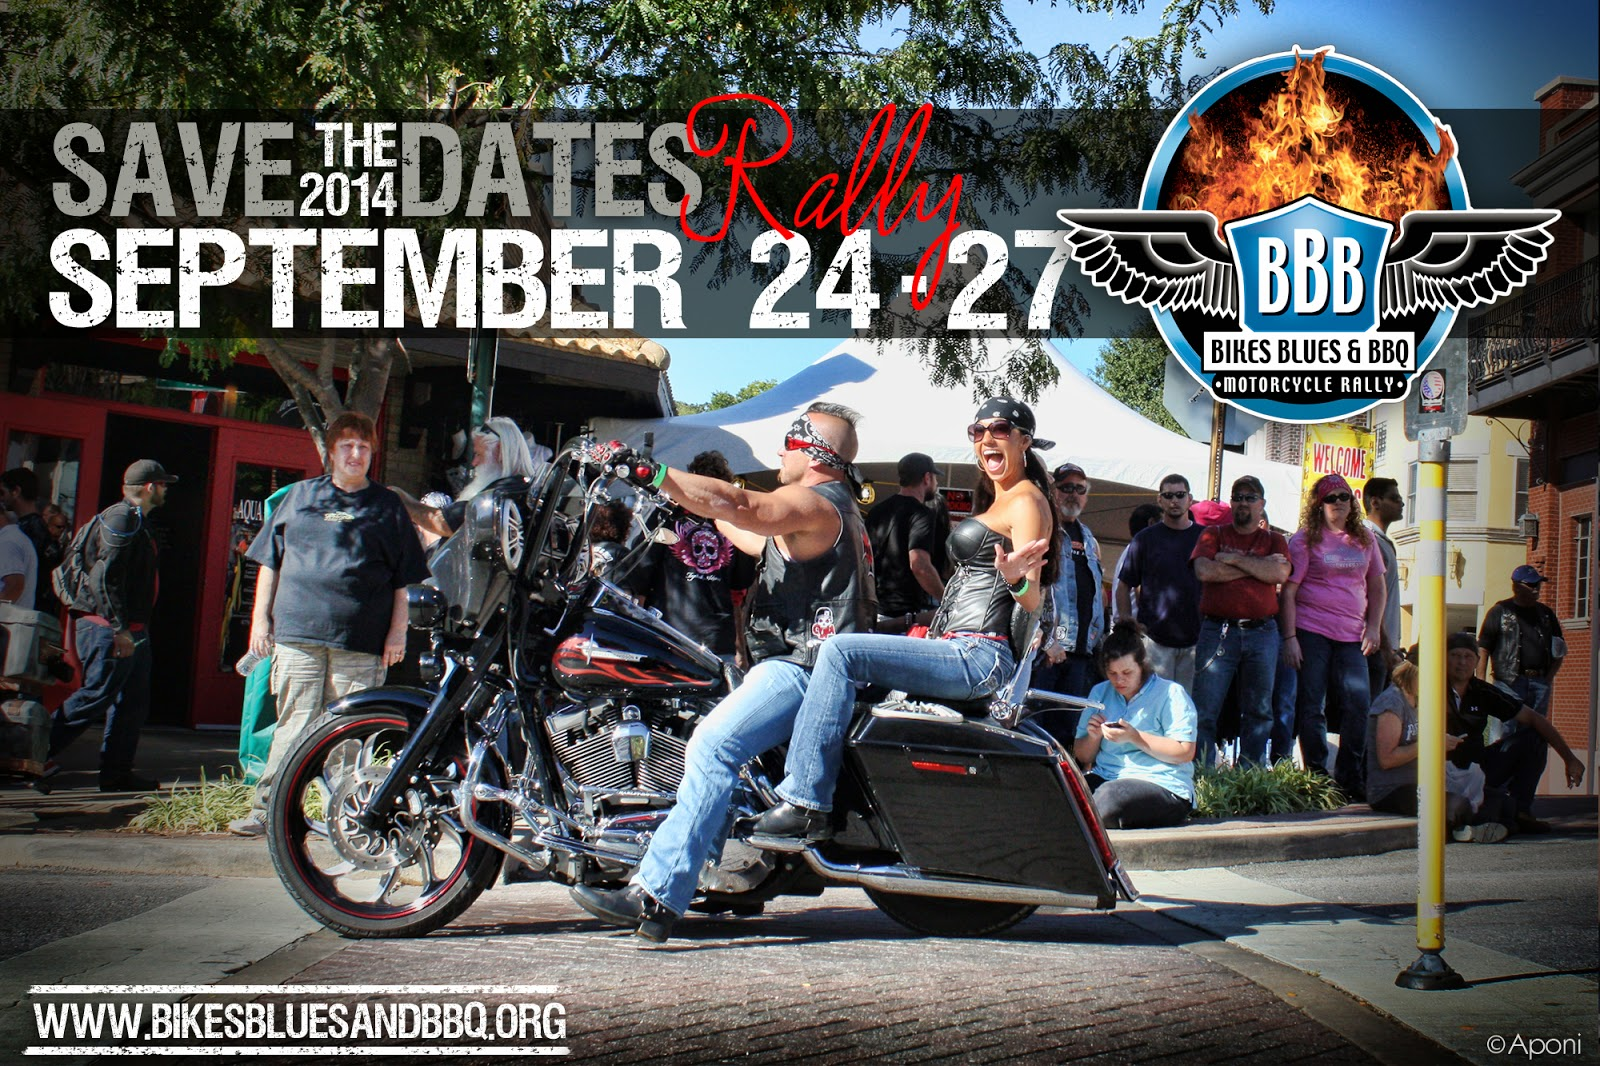 Bikes Blues Bbq 2015 Dates Bikes Blues BBQ and more